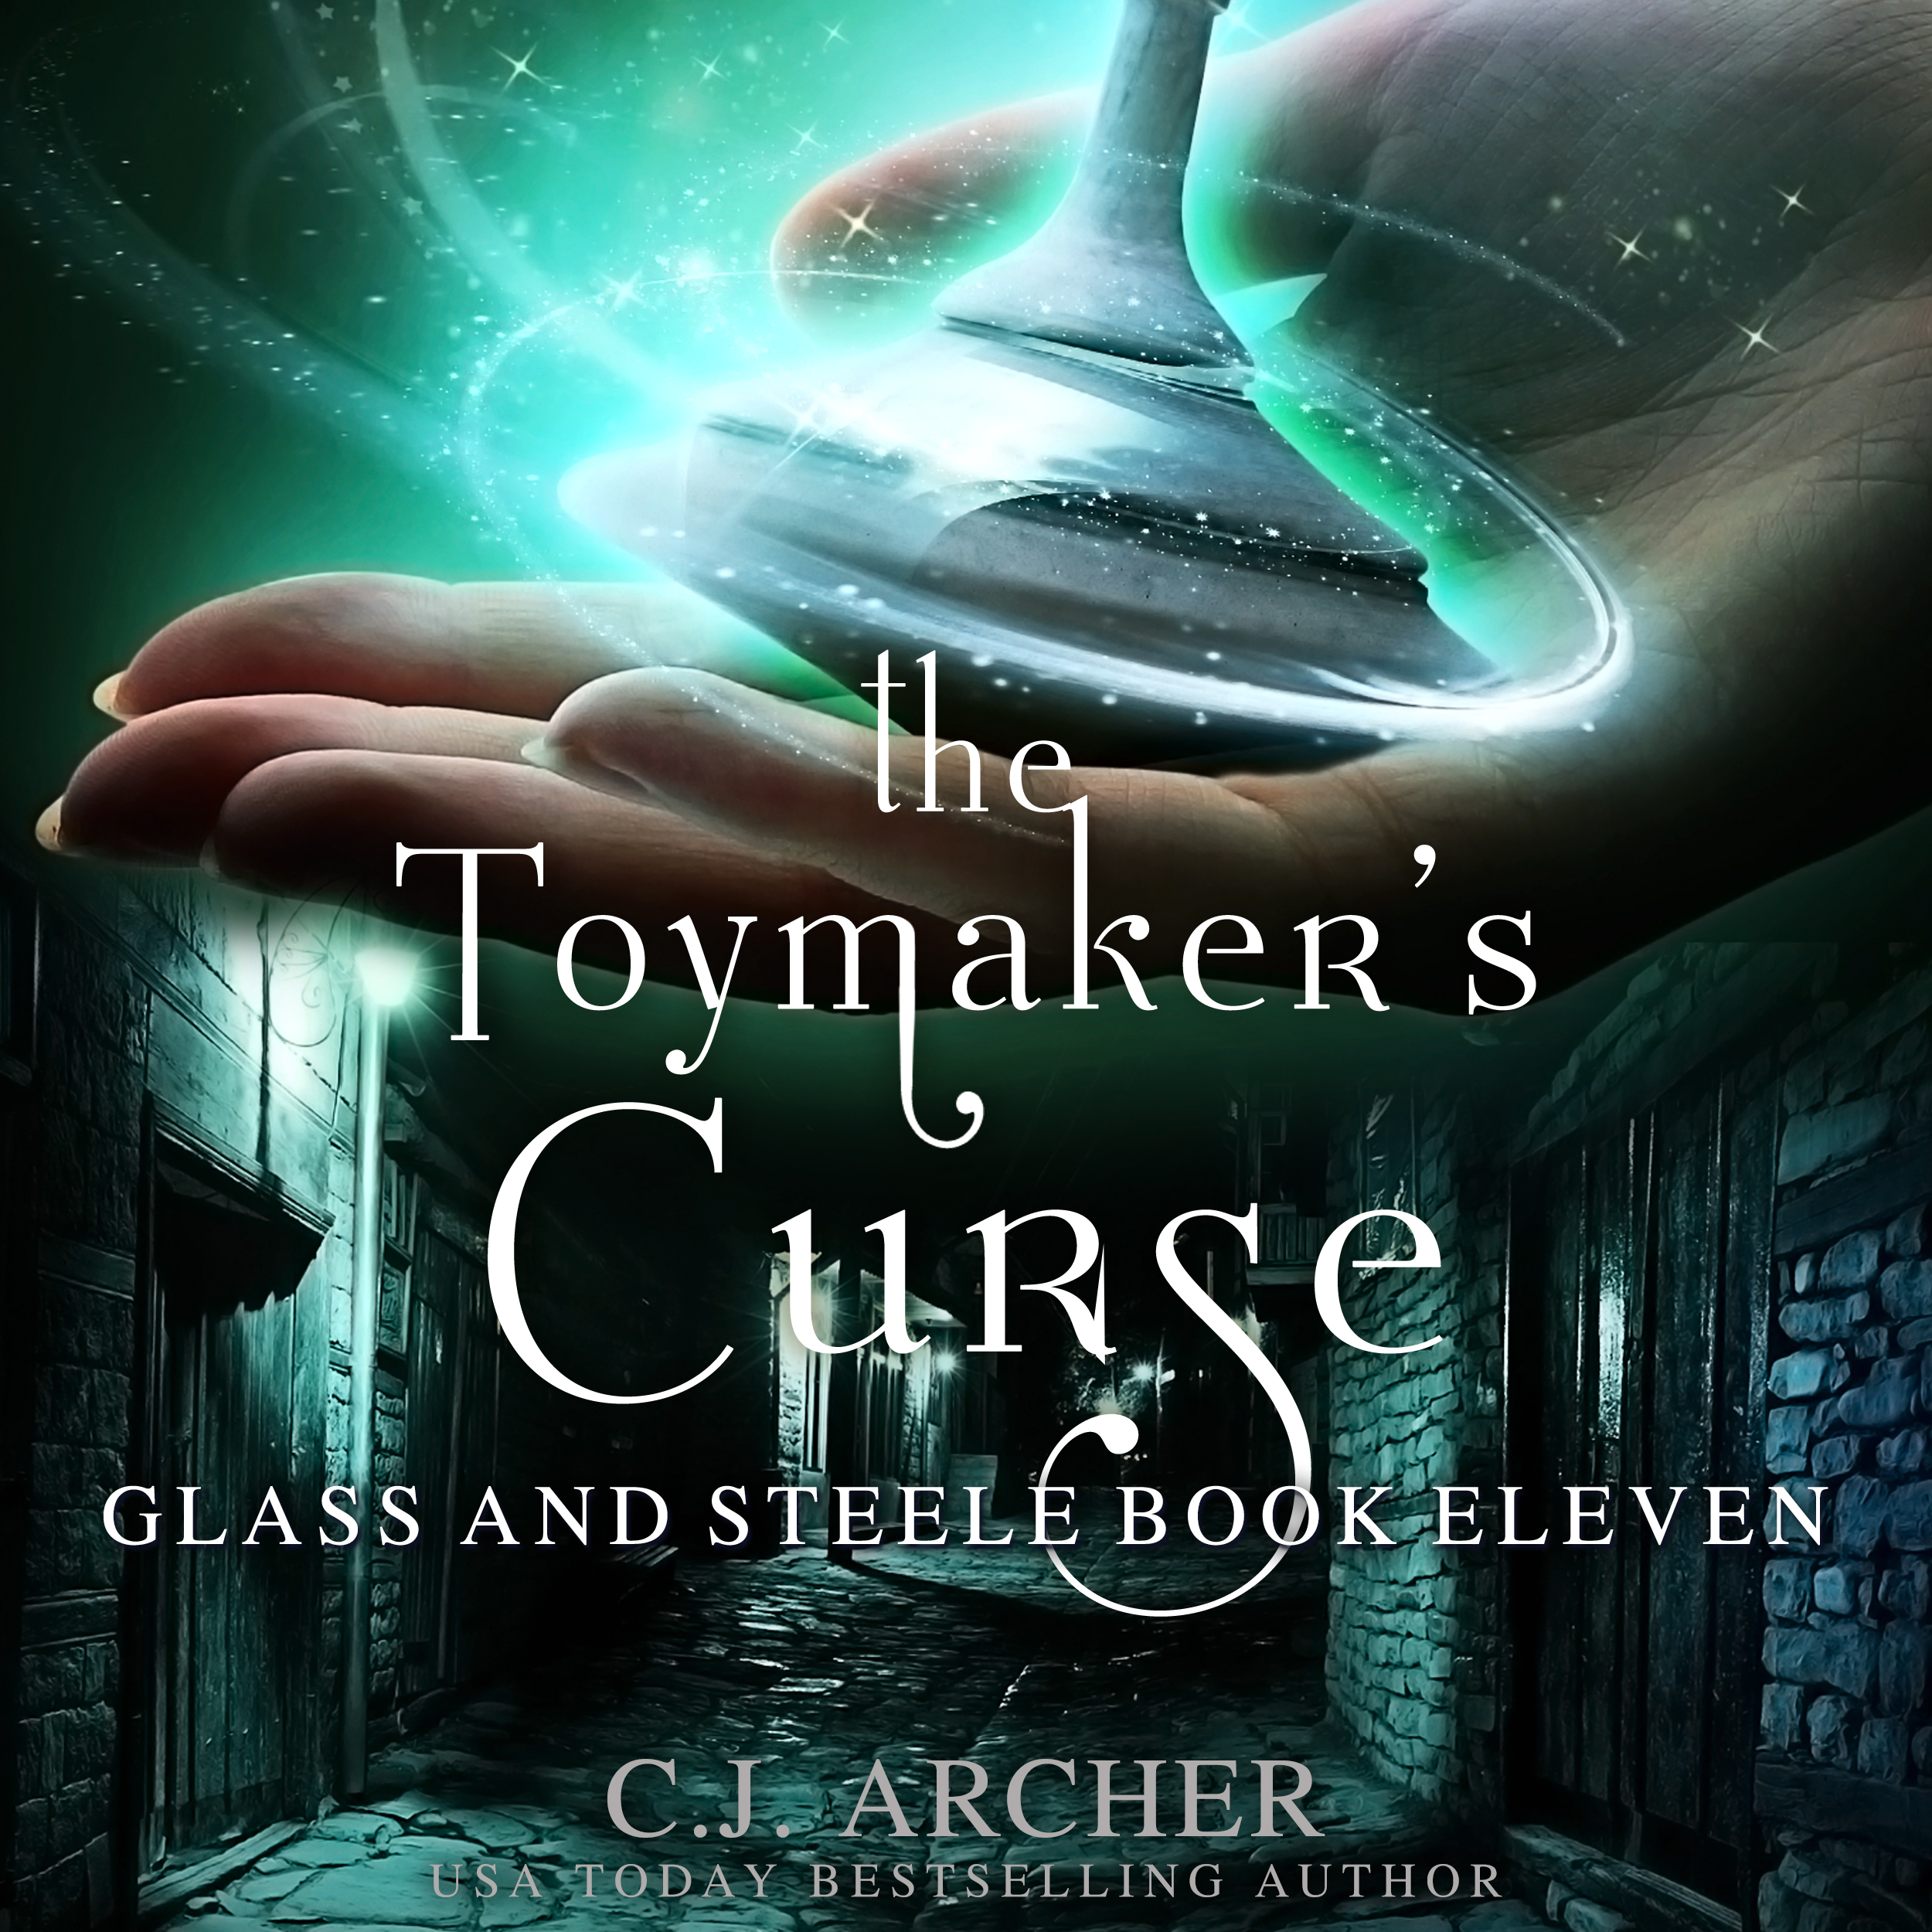 The Toymaker's Curse audiobook by CJ Archer